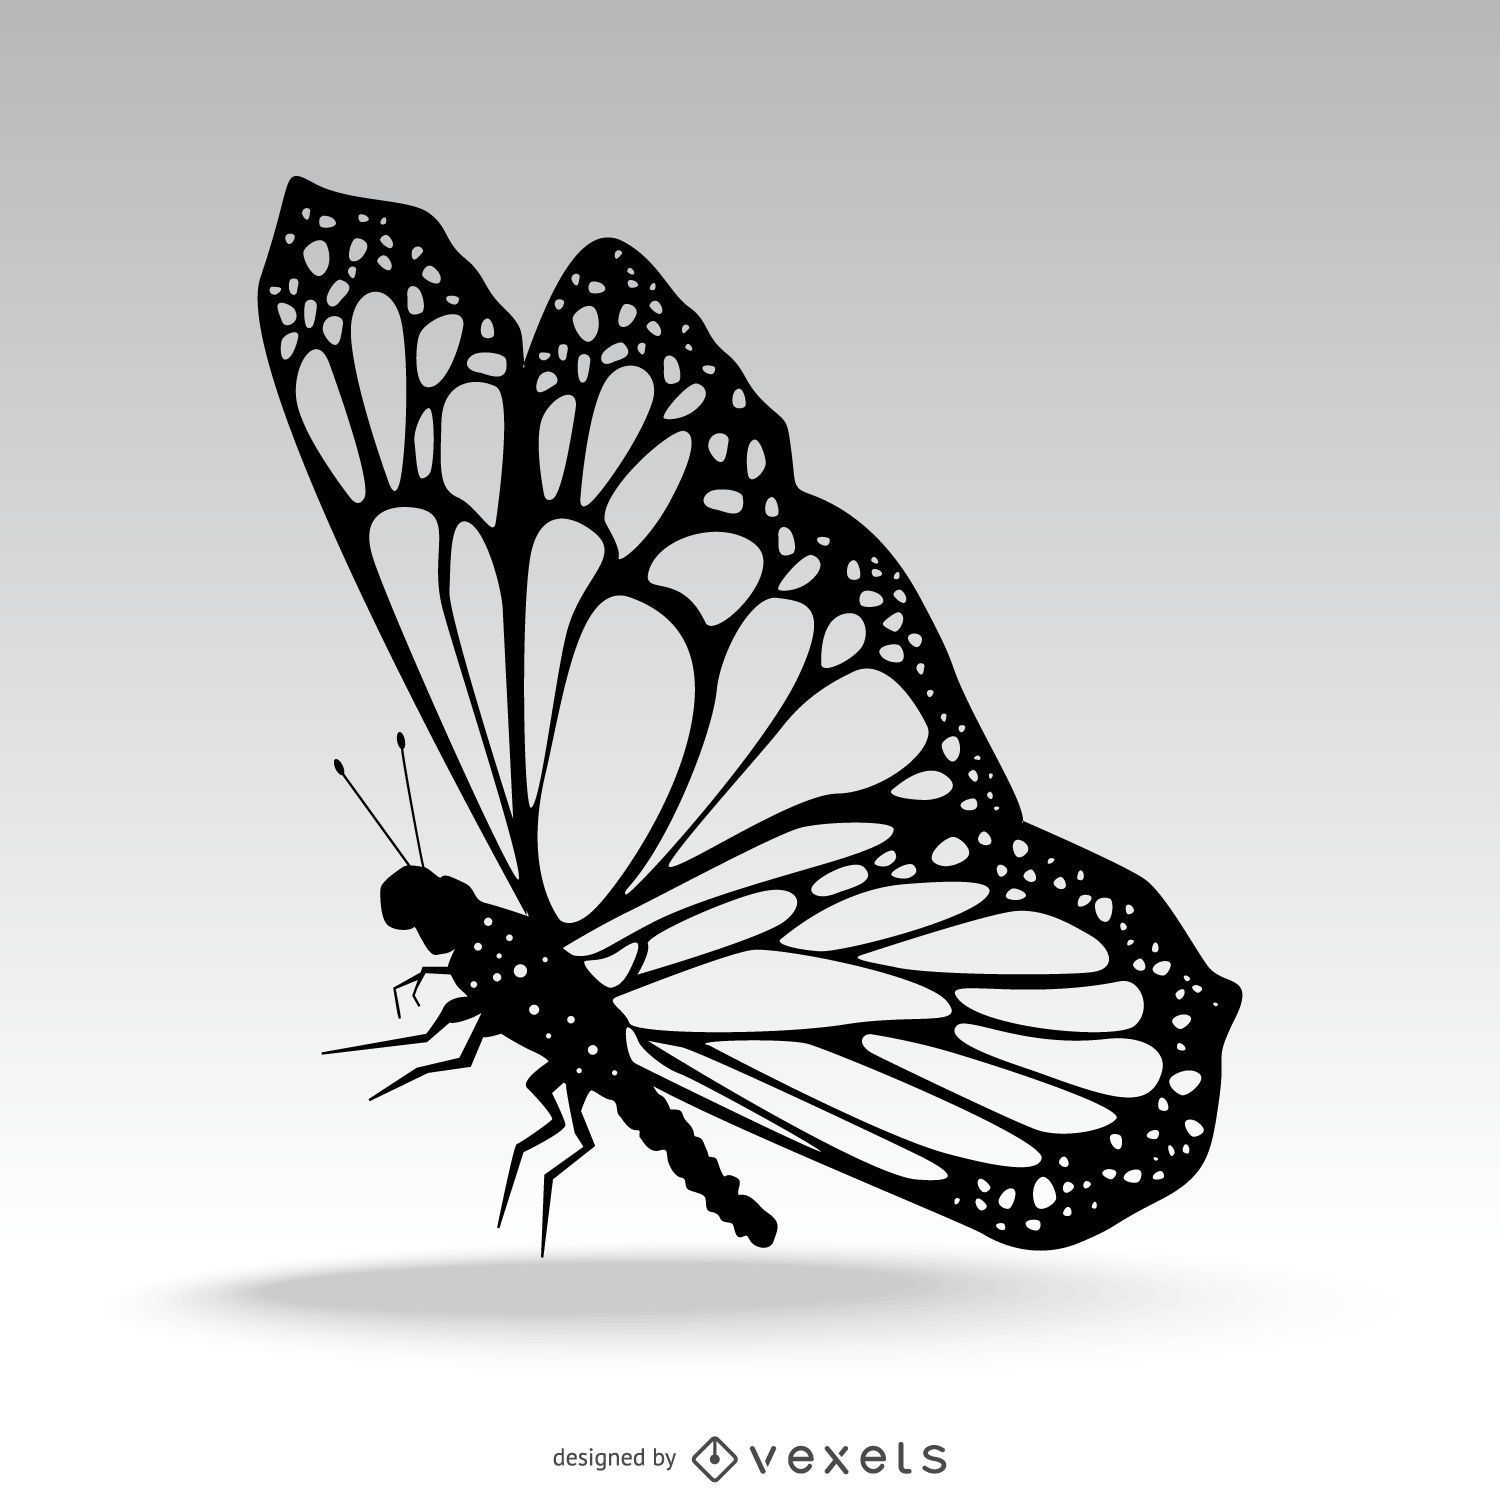 a1d71b3d6b7103487d26b53f2a11cfad isolated butterfly silhouette illustration